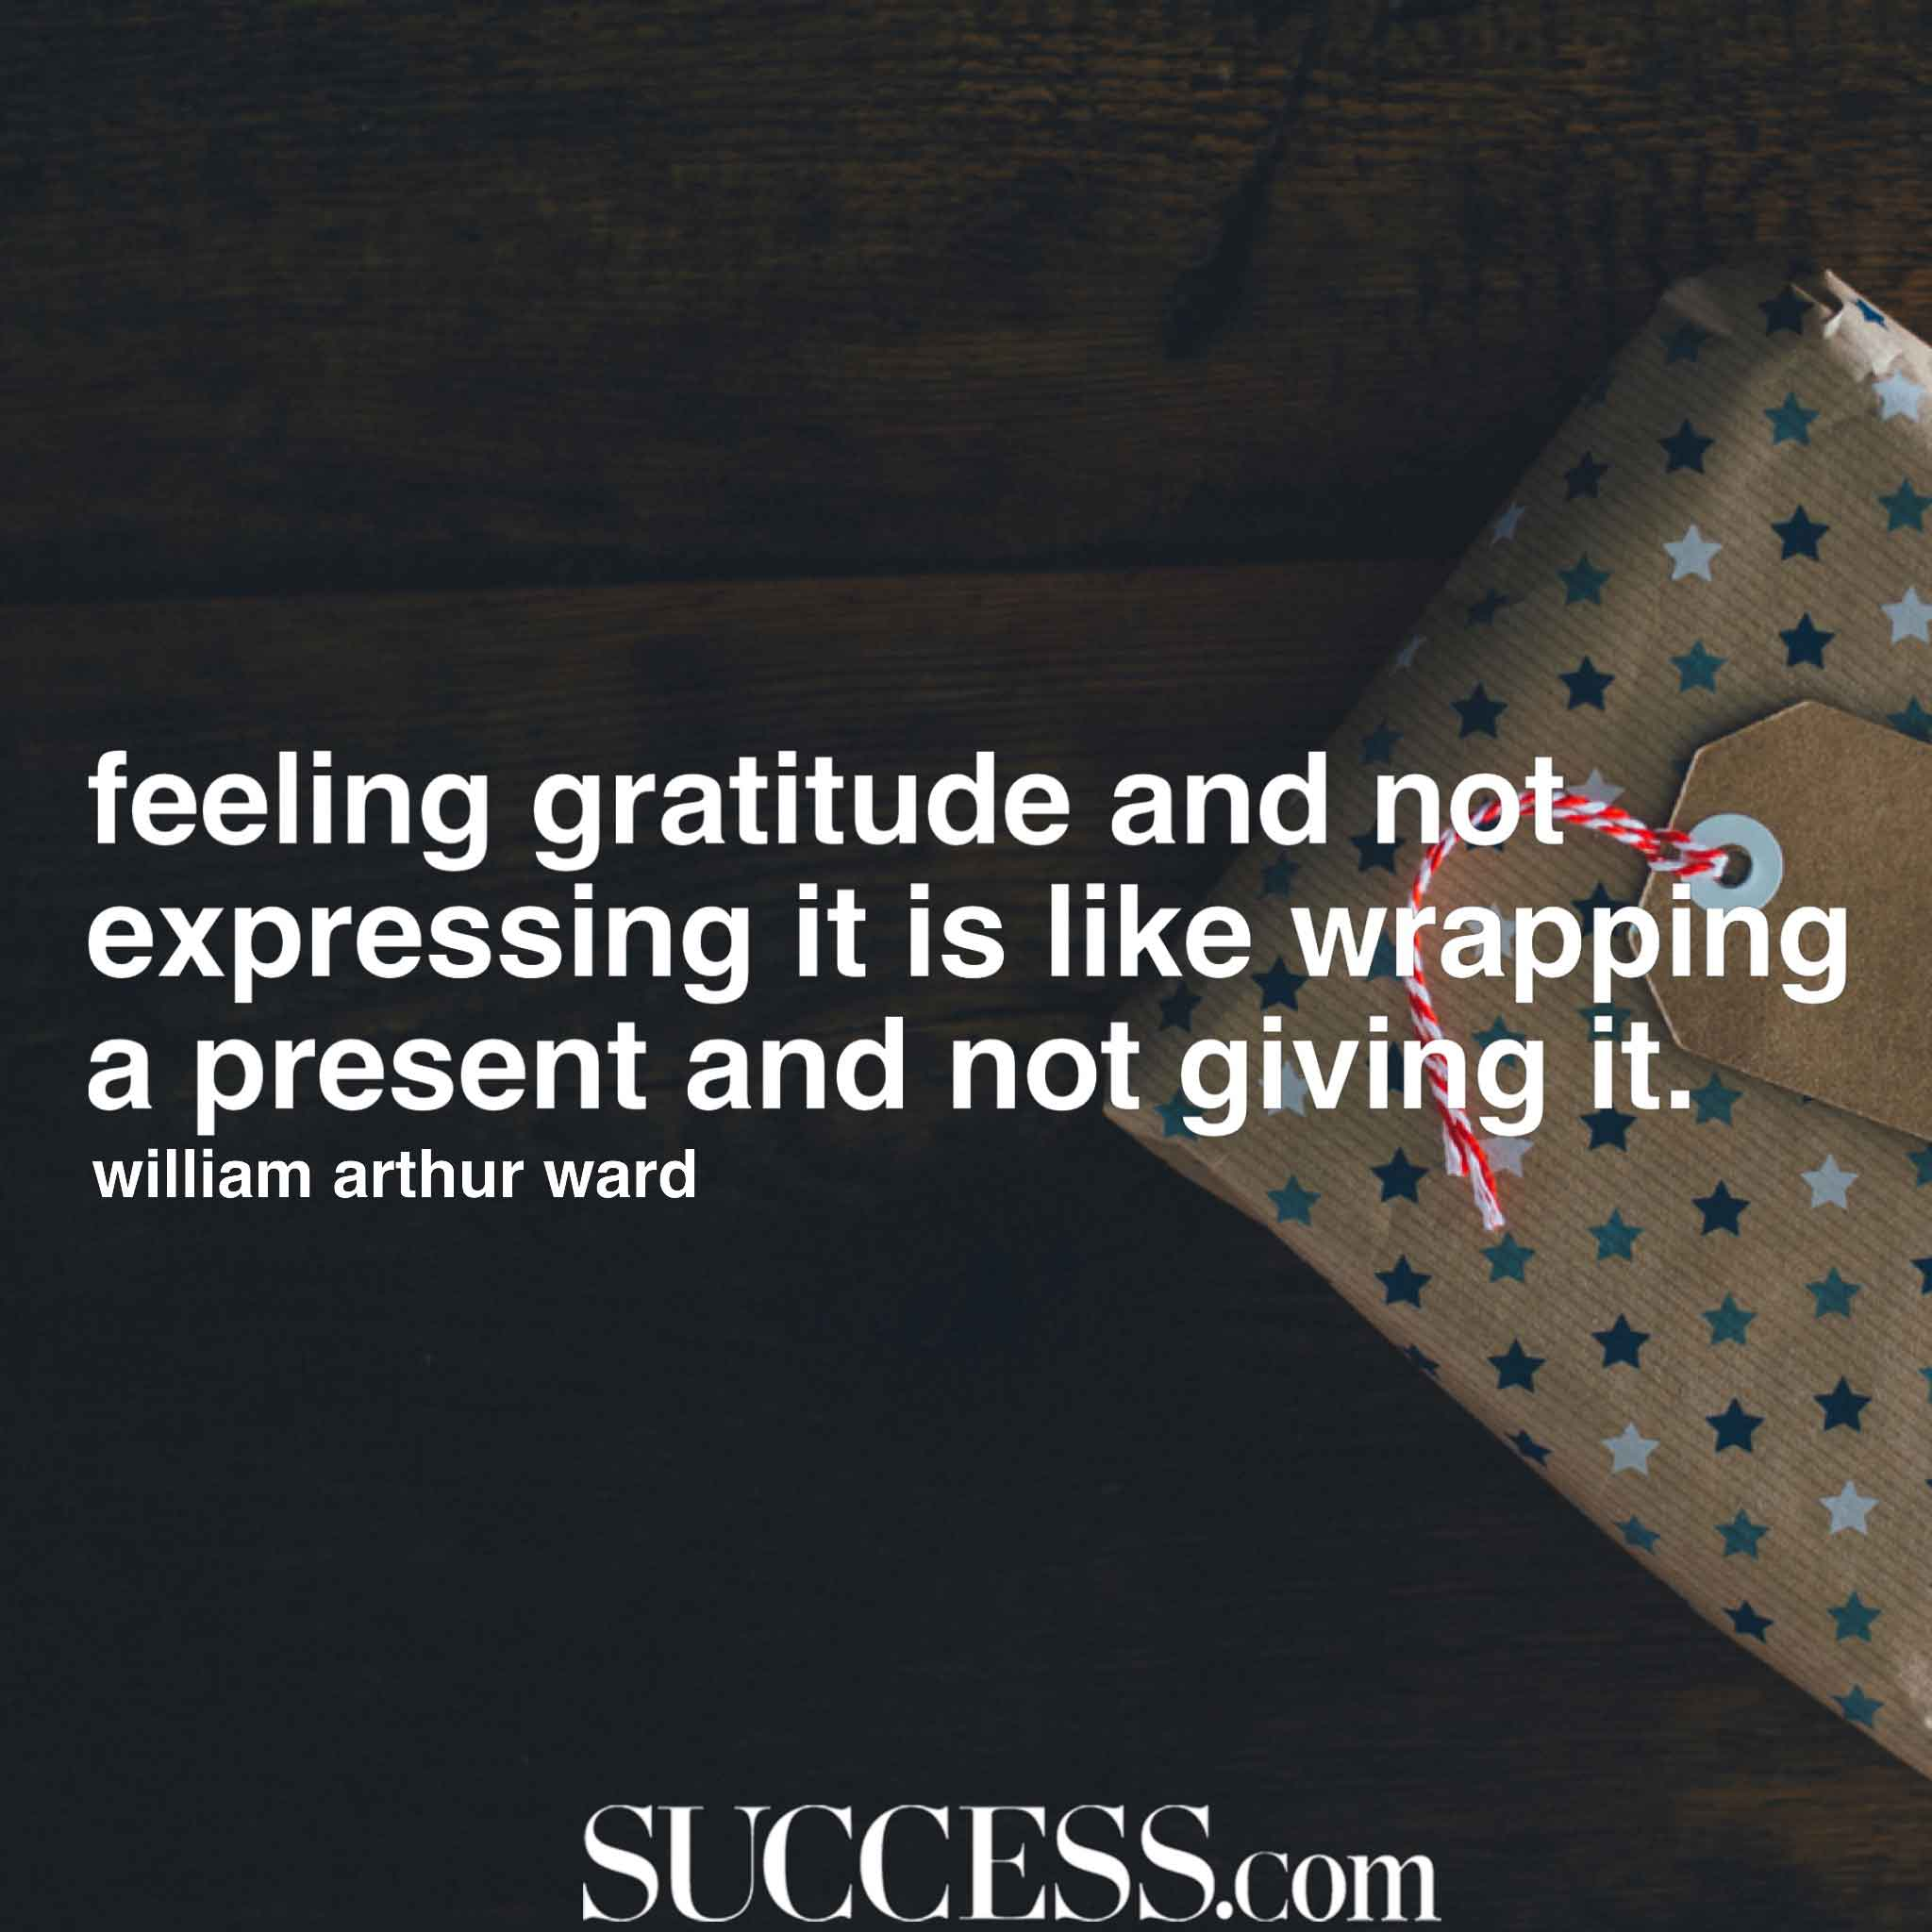 Image of: Romantic Success Magazine 15 Thoughtful Quotes About Gratitude